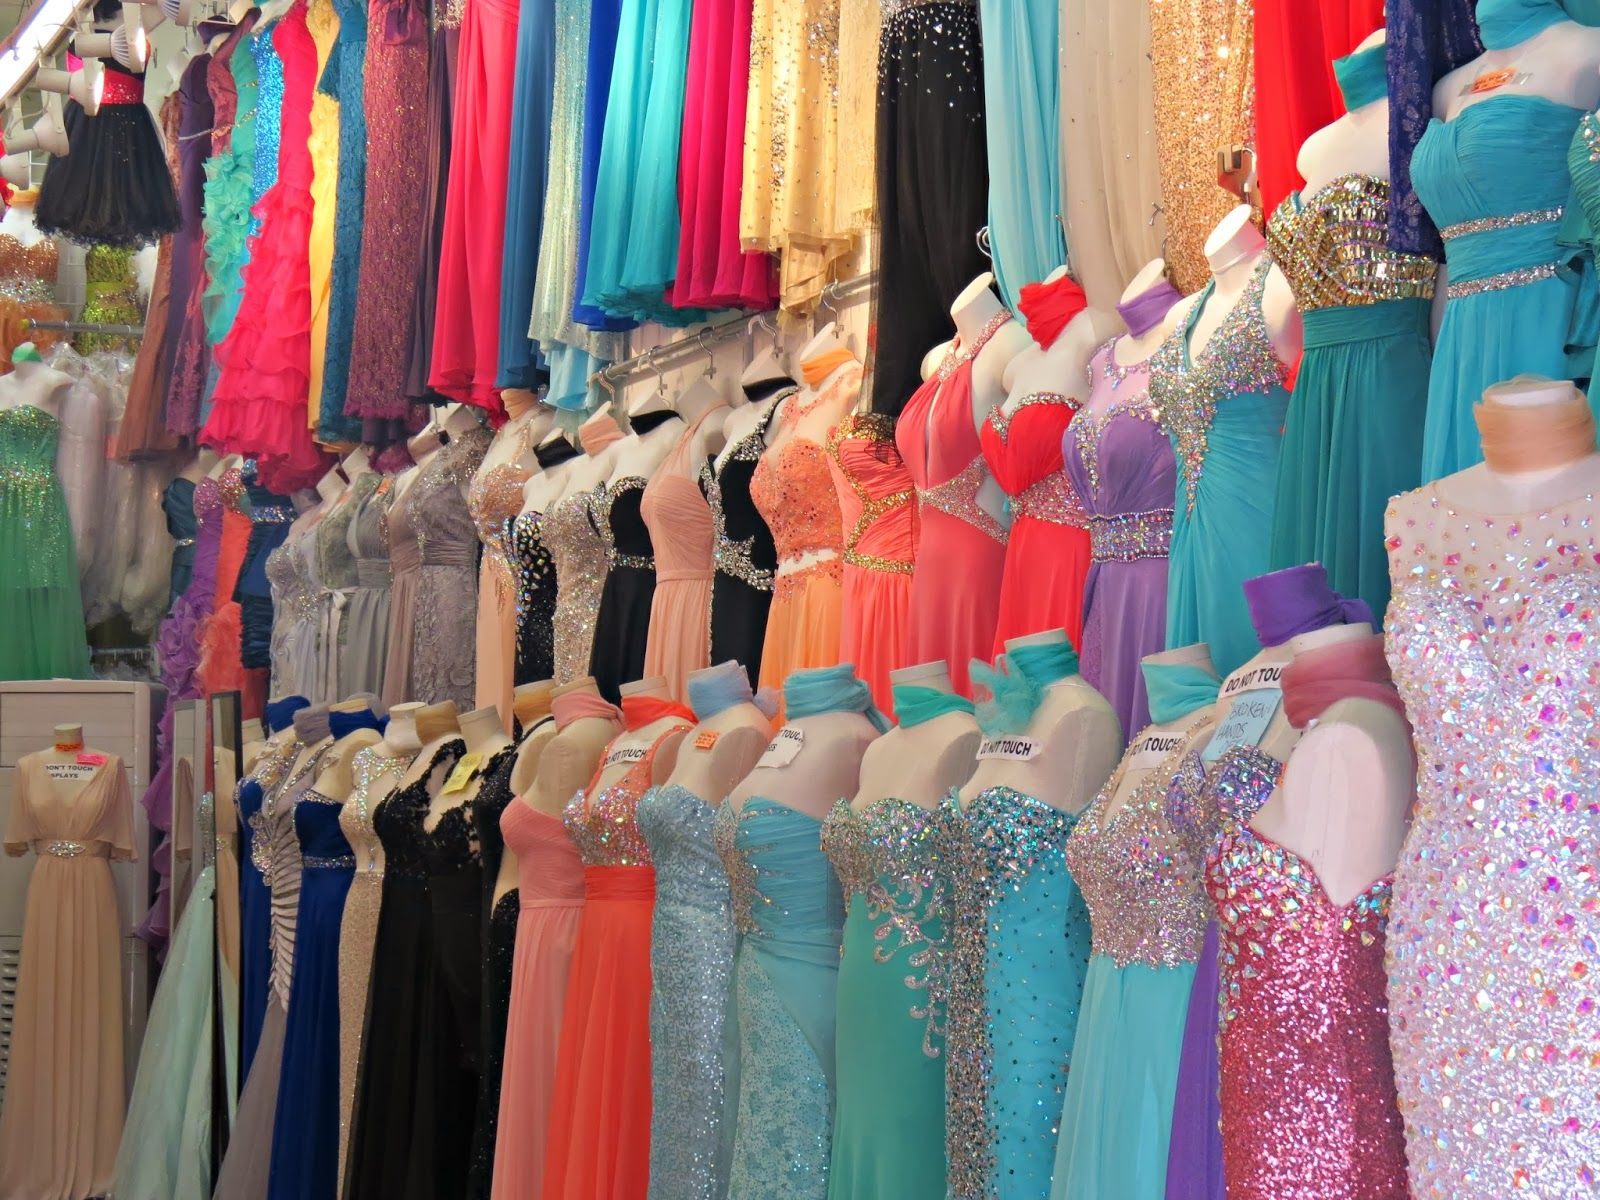 LA Fashion District: LA Fashion District 2014 Prom Dress Shopping ...